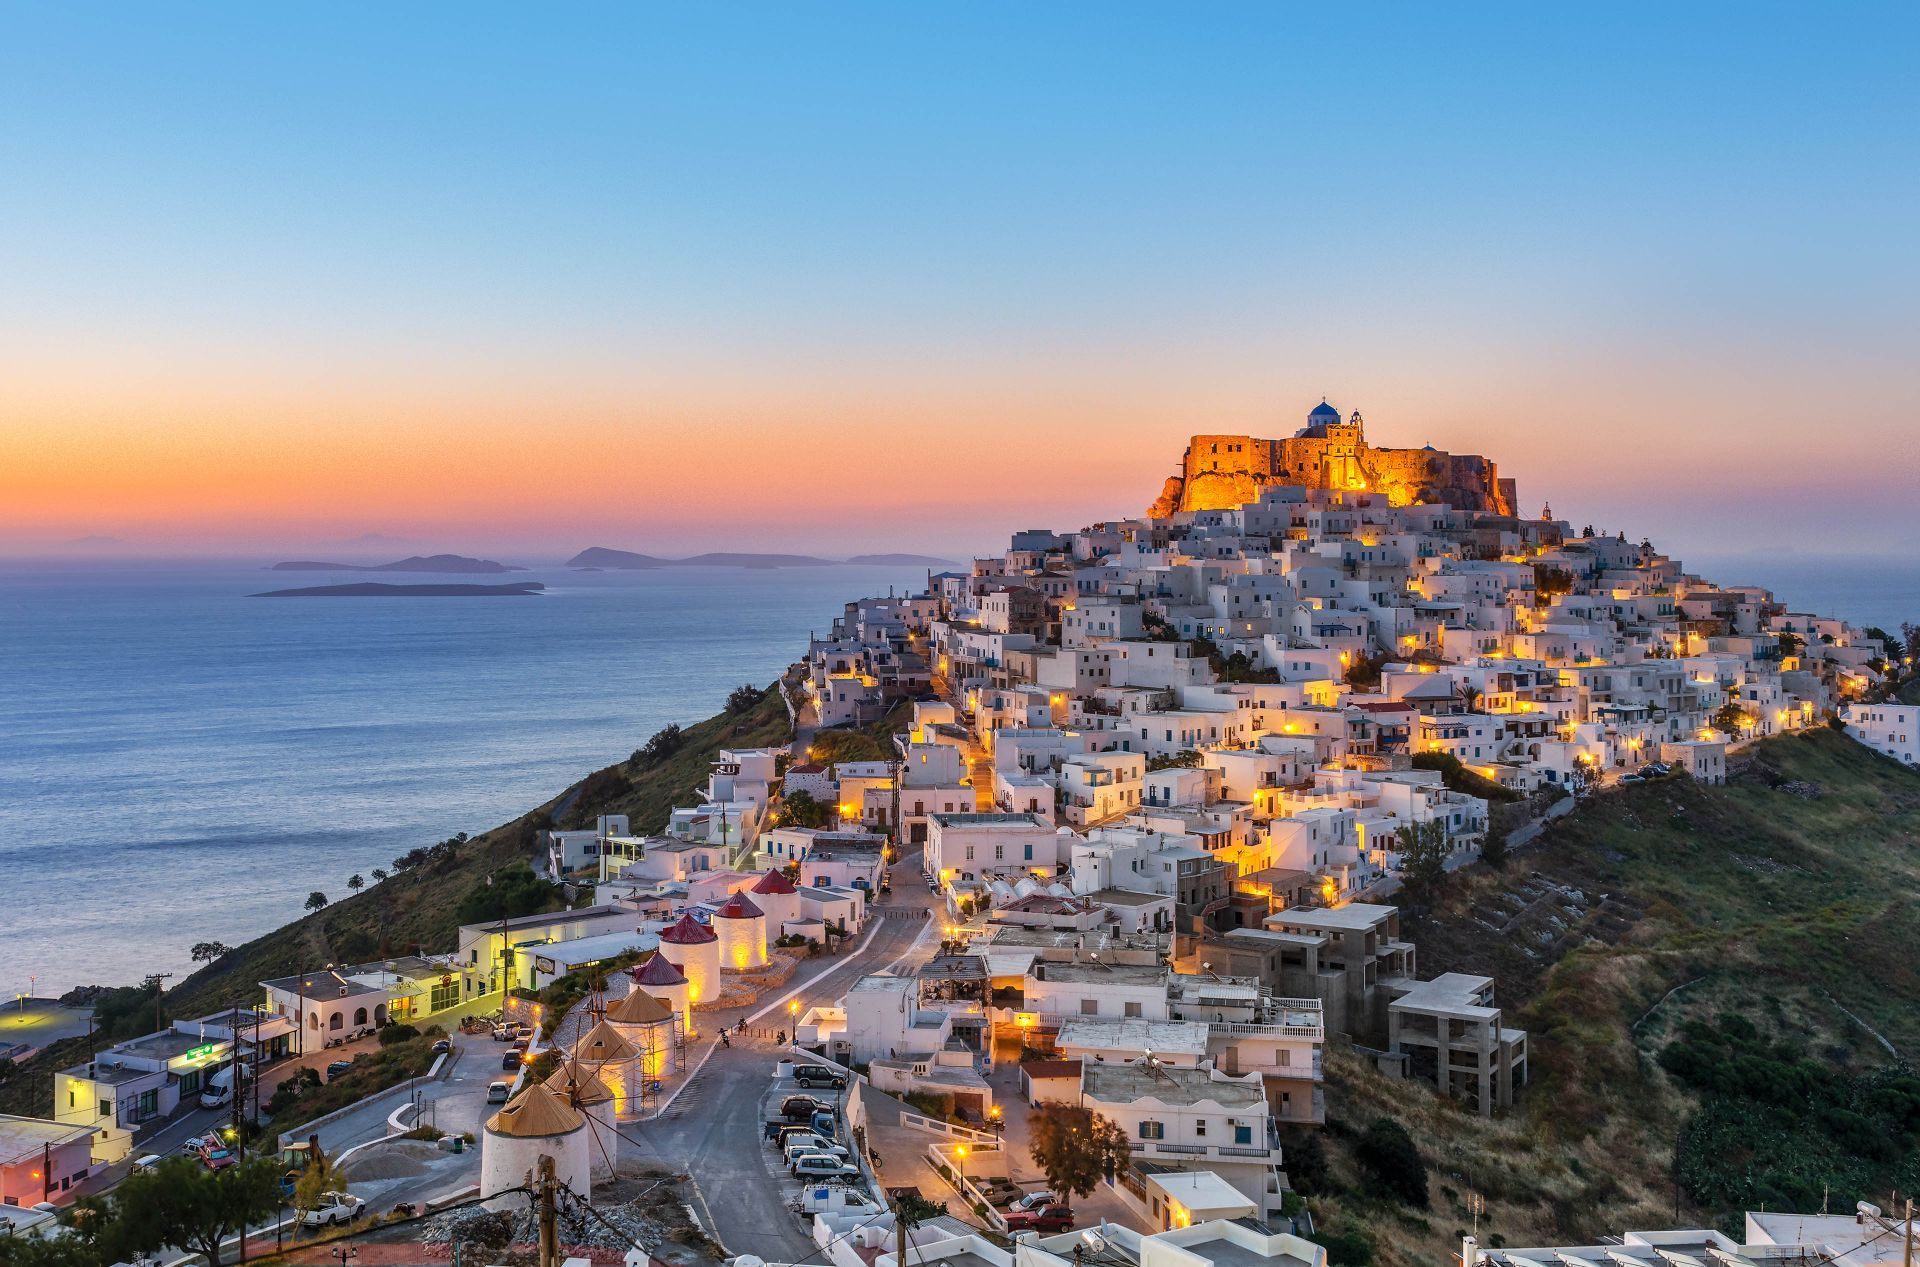 Dodecanese islands: Chora, the main town of Astypalea island